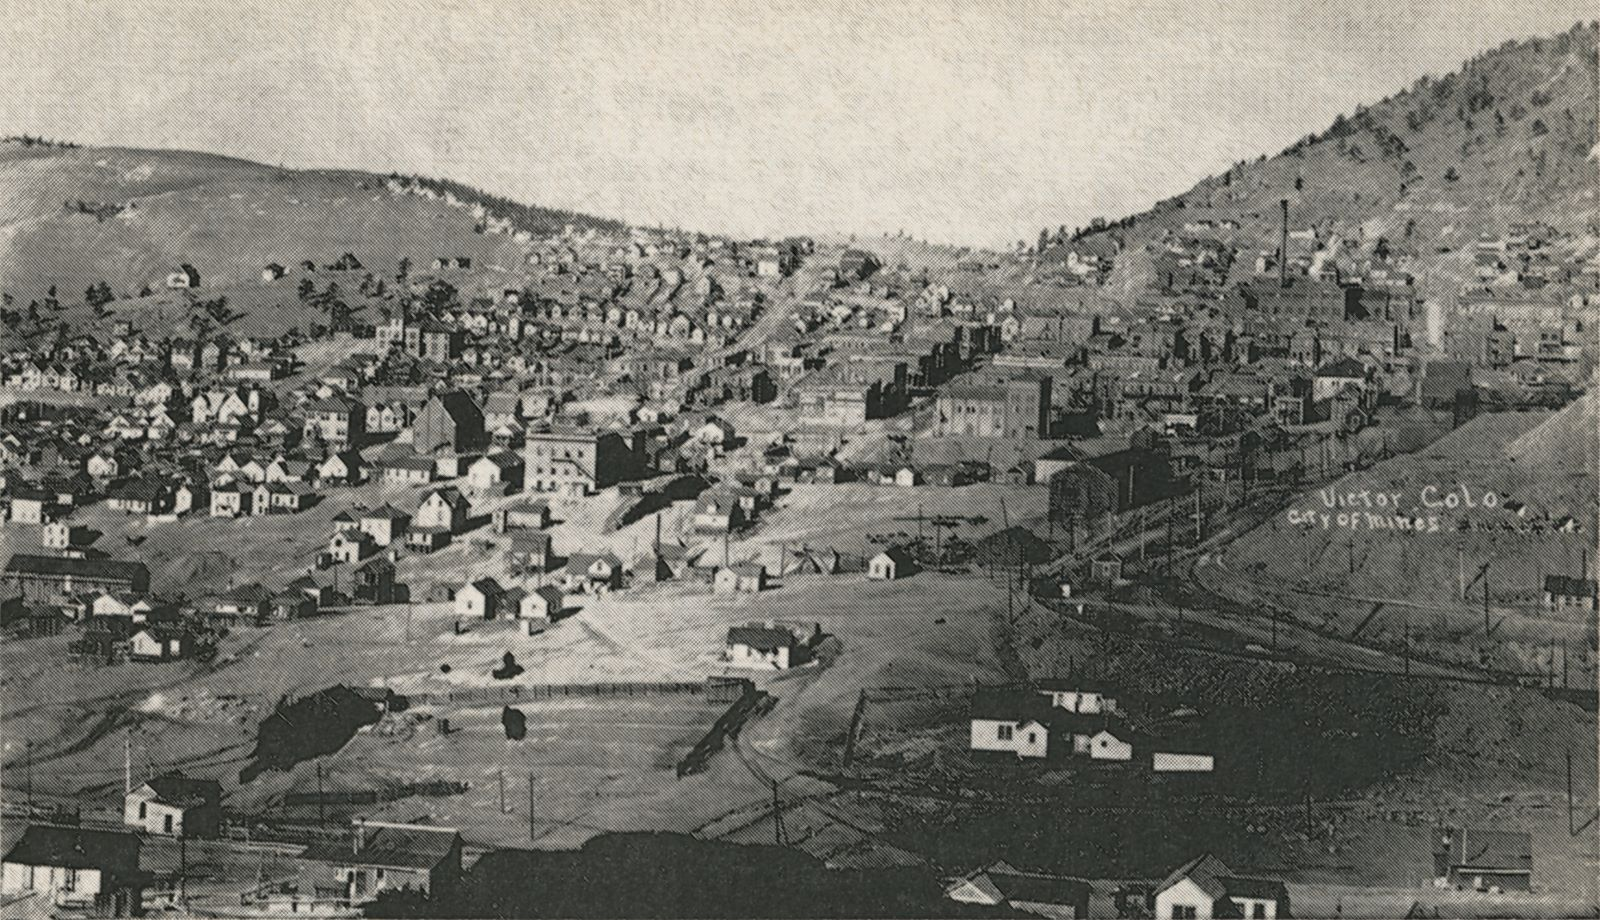 This view of Victor town is taking from east, looking west, sometimes after December 1905 as that month saw the sale of the Gold Coin Mine to the Granite Gold Mining Company, which in this photo is now marked as Granite Mine. The mine is seen about 1/5 in from right hand side, and about 1/3 down from the top. Further down from the Gold Coin is seen the tracks of the Short Line/High Line and the Florence & Cripple Creek, and the Golden Circle track is also seen. The Short Line is the left most, on a big fill after crossing the F. & C.C. track outside the view at right lower about 1/4 up from bottom. The yard of the Short Line is seen better in my postcard copy then in this bad print view. The Golden Circle track leaves the F. & C.C. at left of the text reading the title of this view, and is the part first seen under the title text at right hand side of this view. The group of buildings/houses inside the fence in the foreground right is the Stratton's Home when he was staying in the District after making his millions as per Mr. Spell in his book. Somewhere at left of center of the photo is the dump of the Spicer/Rexall mine seen, in my postcard view I can see it a little bit better but not that easy, appears to be a crib wall around it. It would be located just below a line between the Garfield School (the large structure with the tower about 1/4 in from left-hand side and 1/3 from top) and the Gold Coin mine so to speak, about 1/4 on that line towards the Gold Coin.